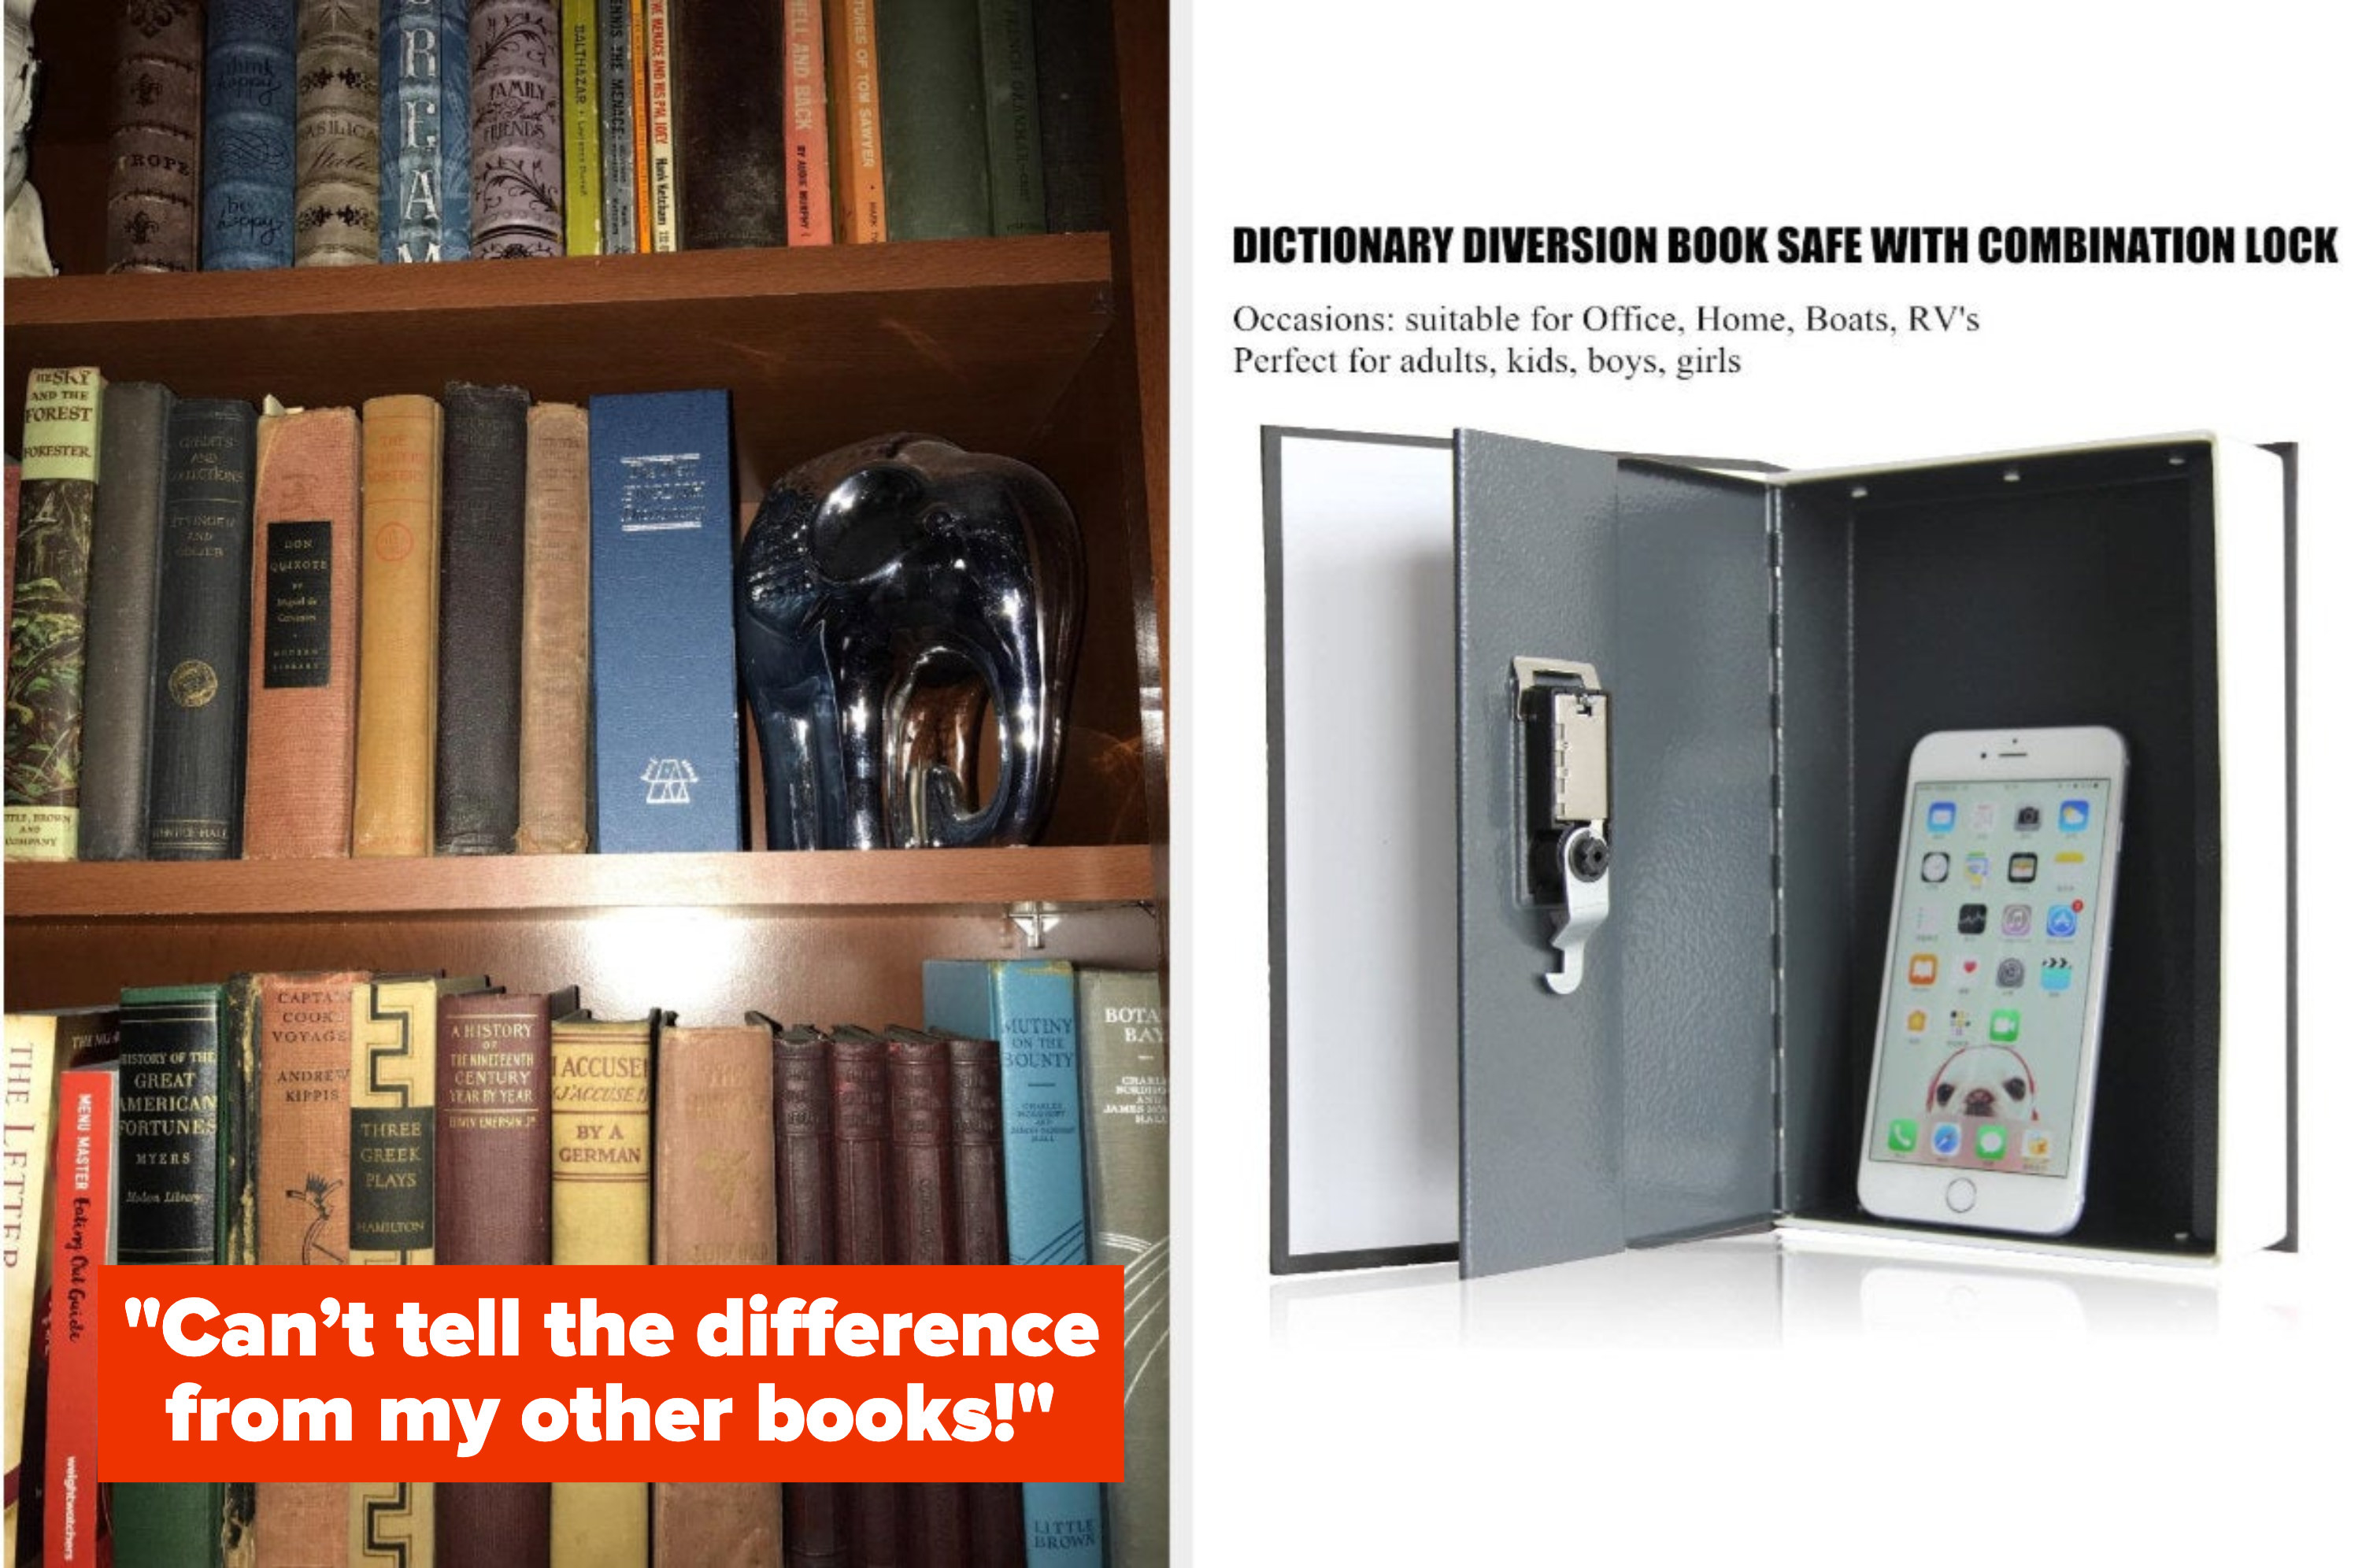 the left side shows a stack of books on a shelf with the fake book in the mix. The right side shows the book opened which reveals a safe and has a smartphone in it.